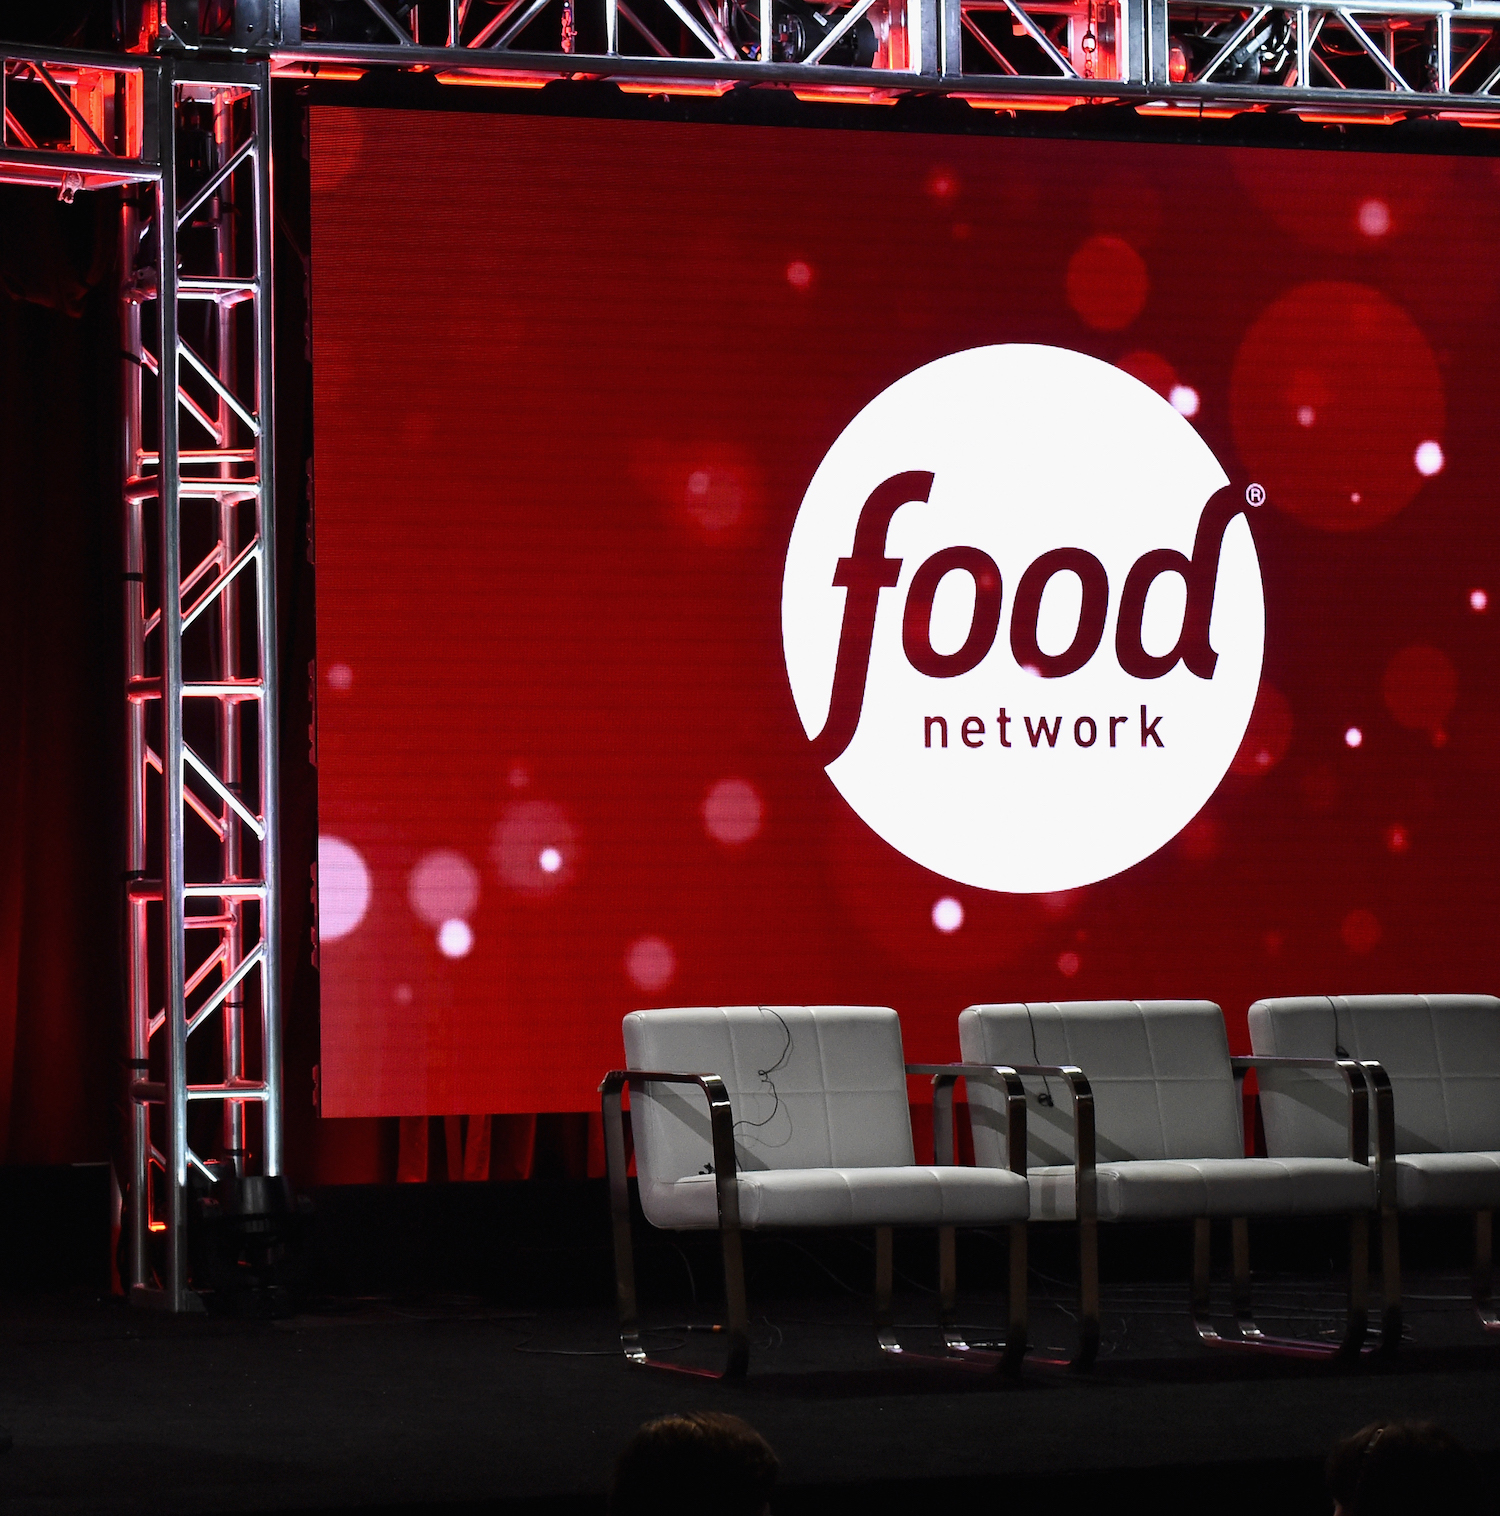 Food Network logo projected on a screen with three gray chairs in front